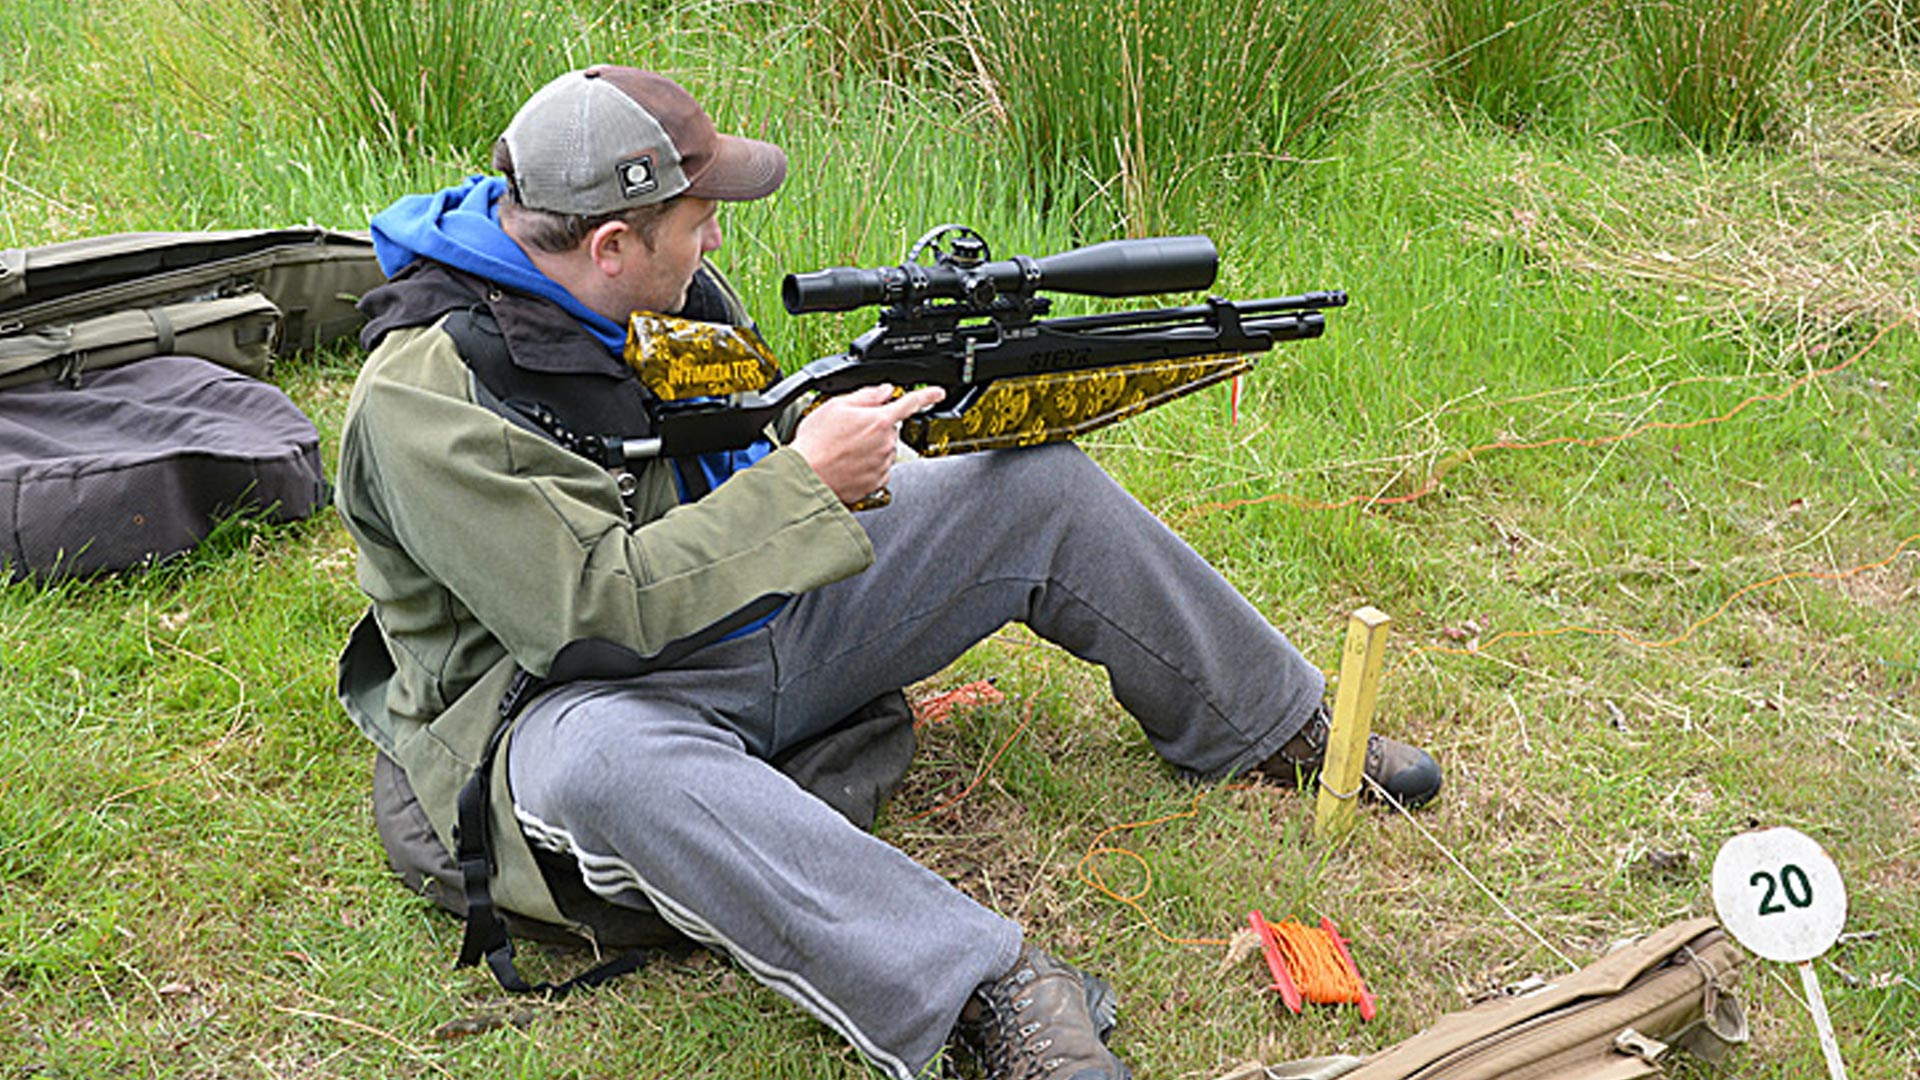 About the Welsh Airgun and Field-Target Association - Welsh